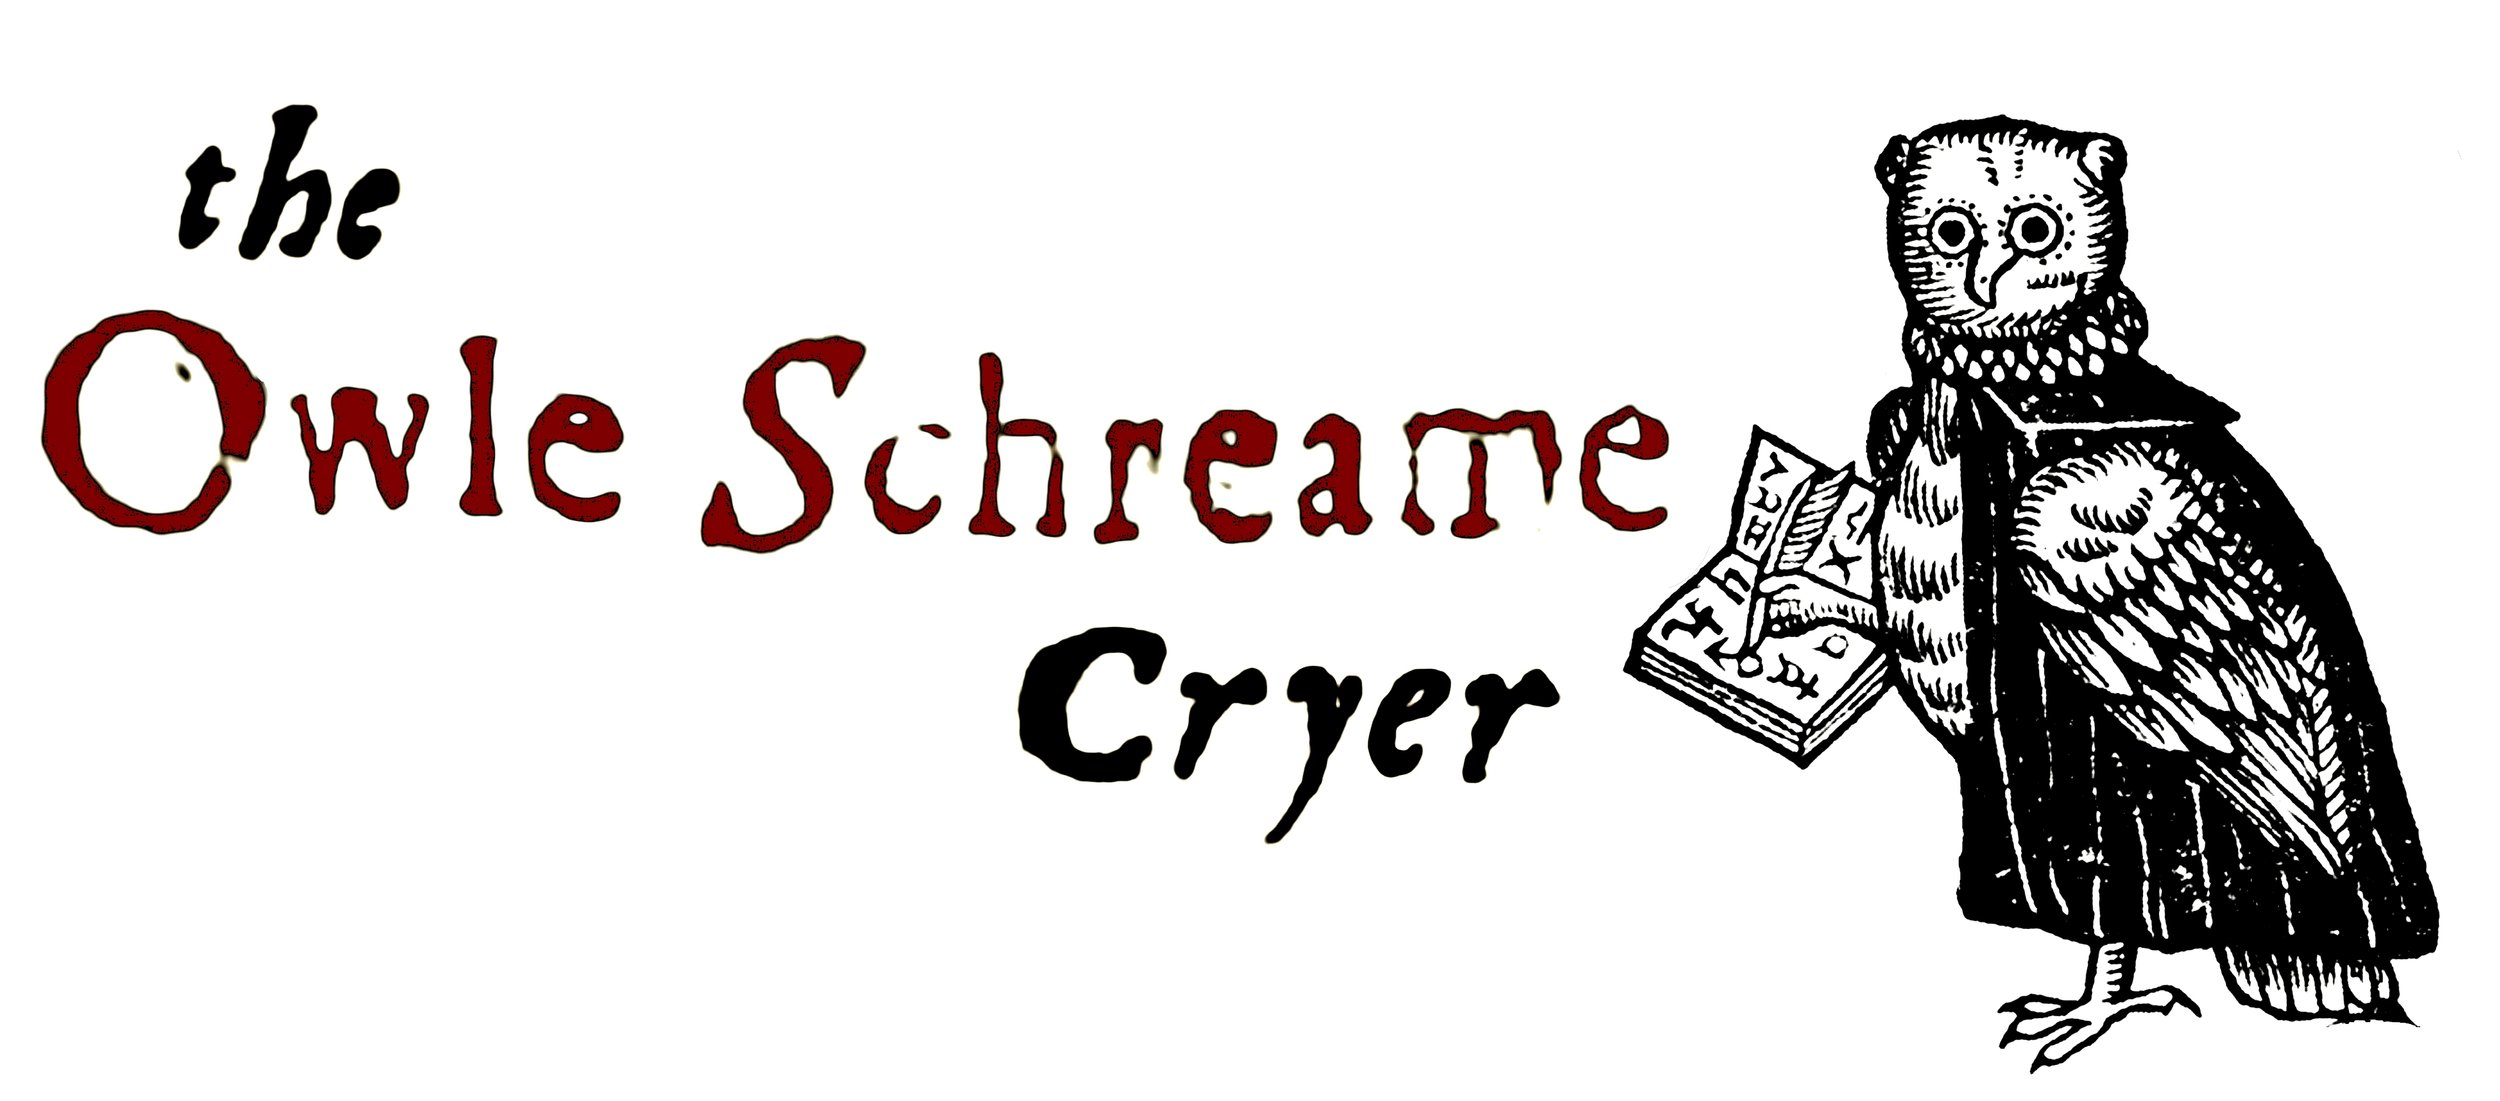 Owle Schreame Cryer banner 2 red.jpg